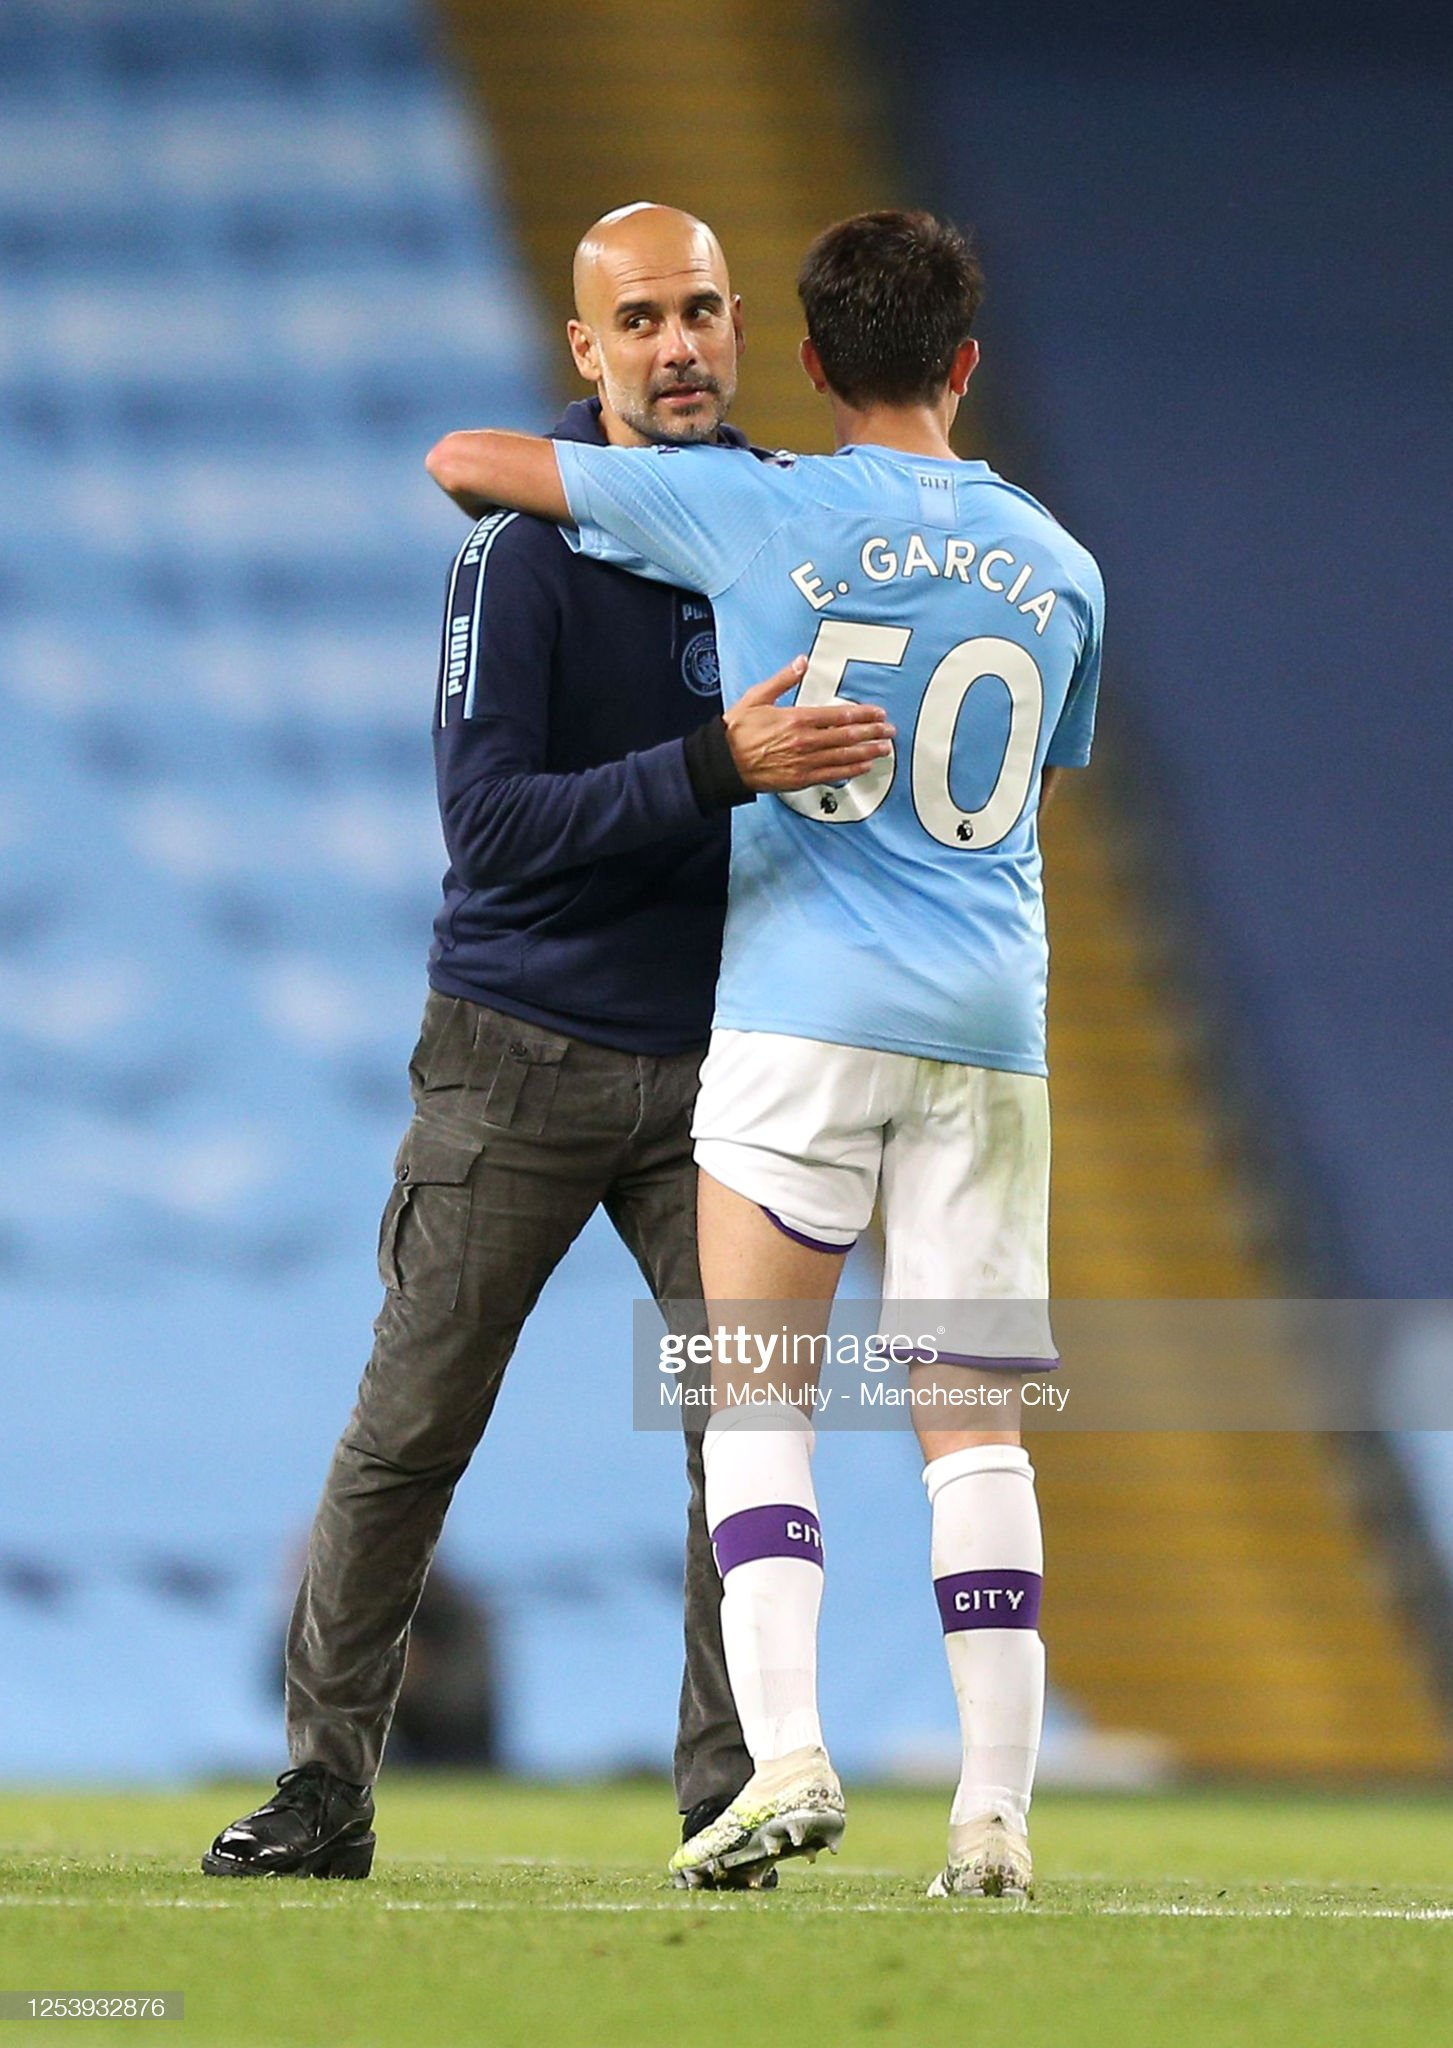 ¿Cuánto mide Eric Garcia? - Altura real: 1,79 - Real height Pep-guardiola-manager-of-manchester-city-embraces-eric-garcia-of-picture-id1253932876?s=2048x2048